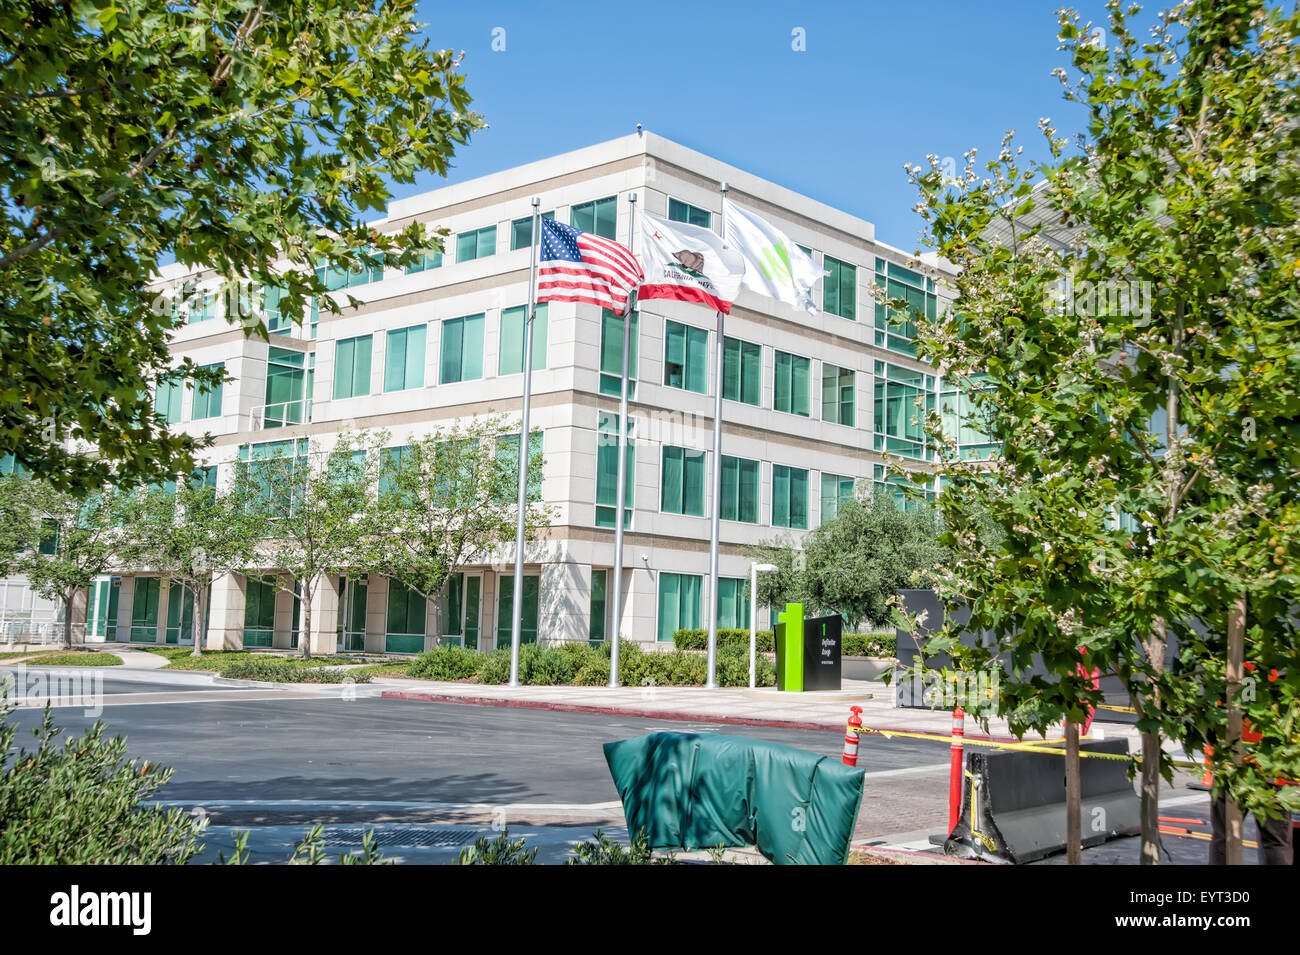 CUPERTINO, CA, - AUGUST 1, 2015: Apple Inc Headquarters at One Infinite Loop located in Cupertino, California on - Stock Image